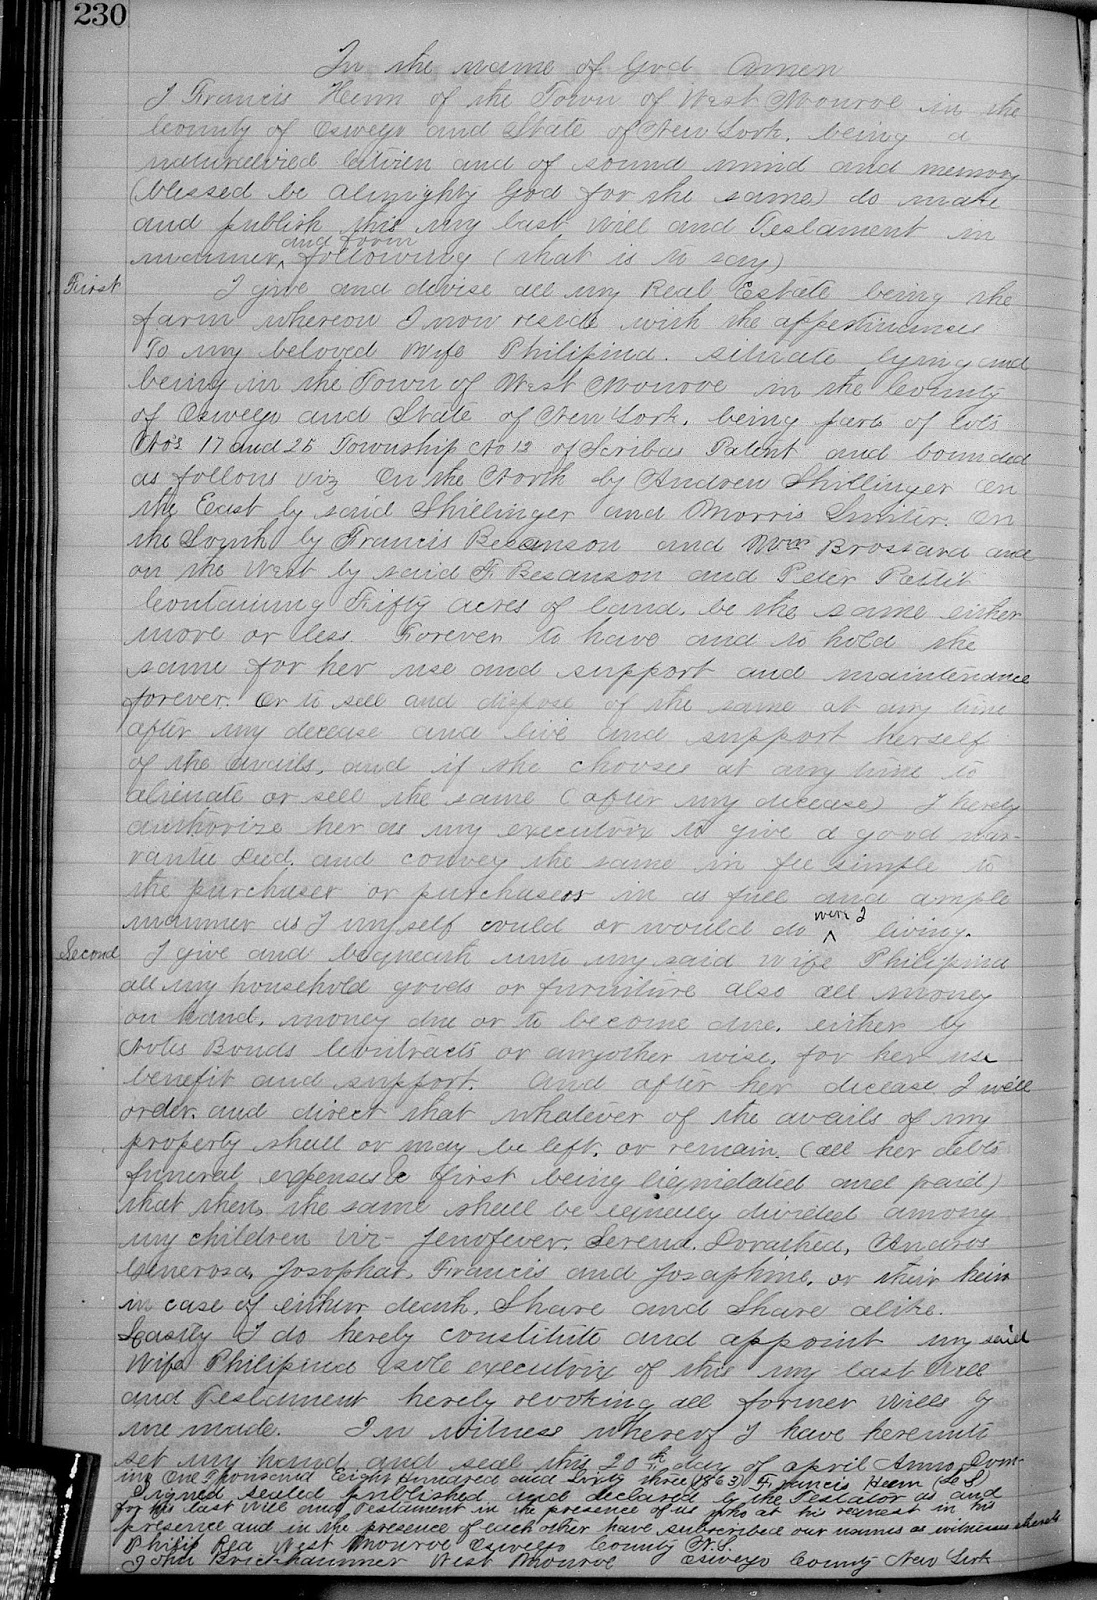 Climbing My Family Tree: Last Will and Testament of Francis Henn, signed April 20, 1863